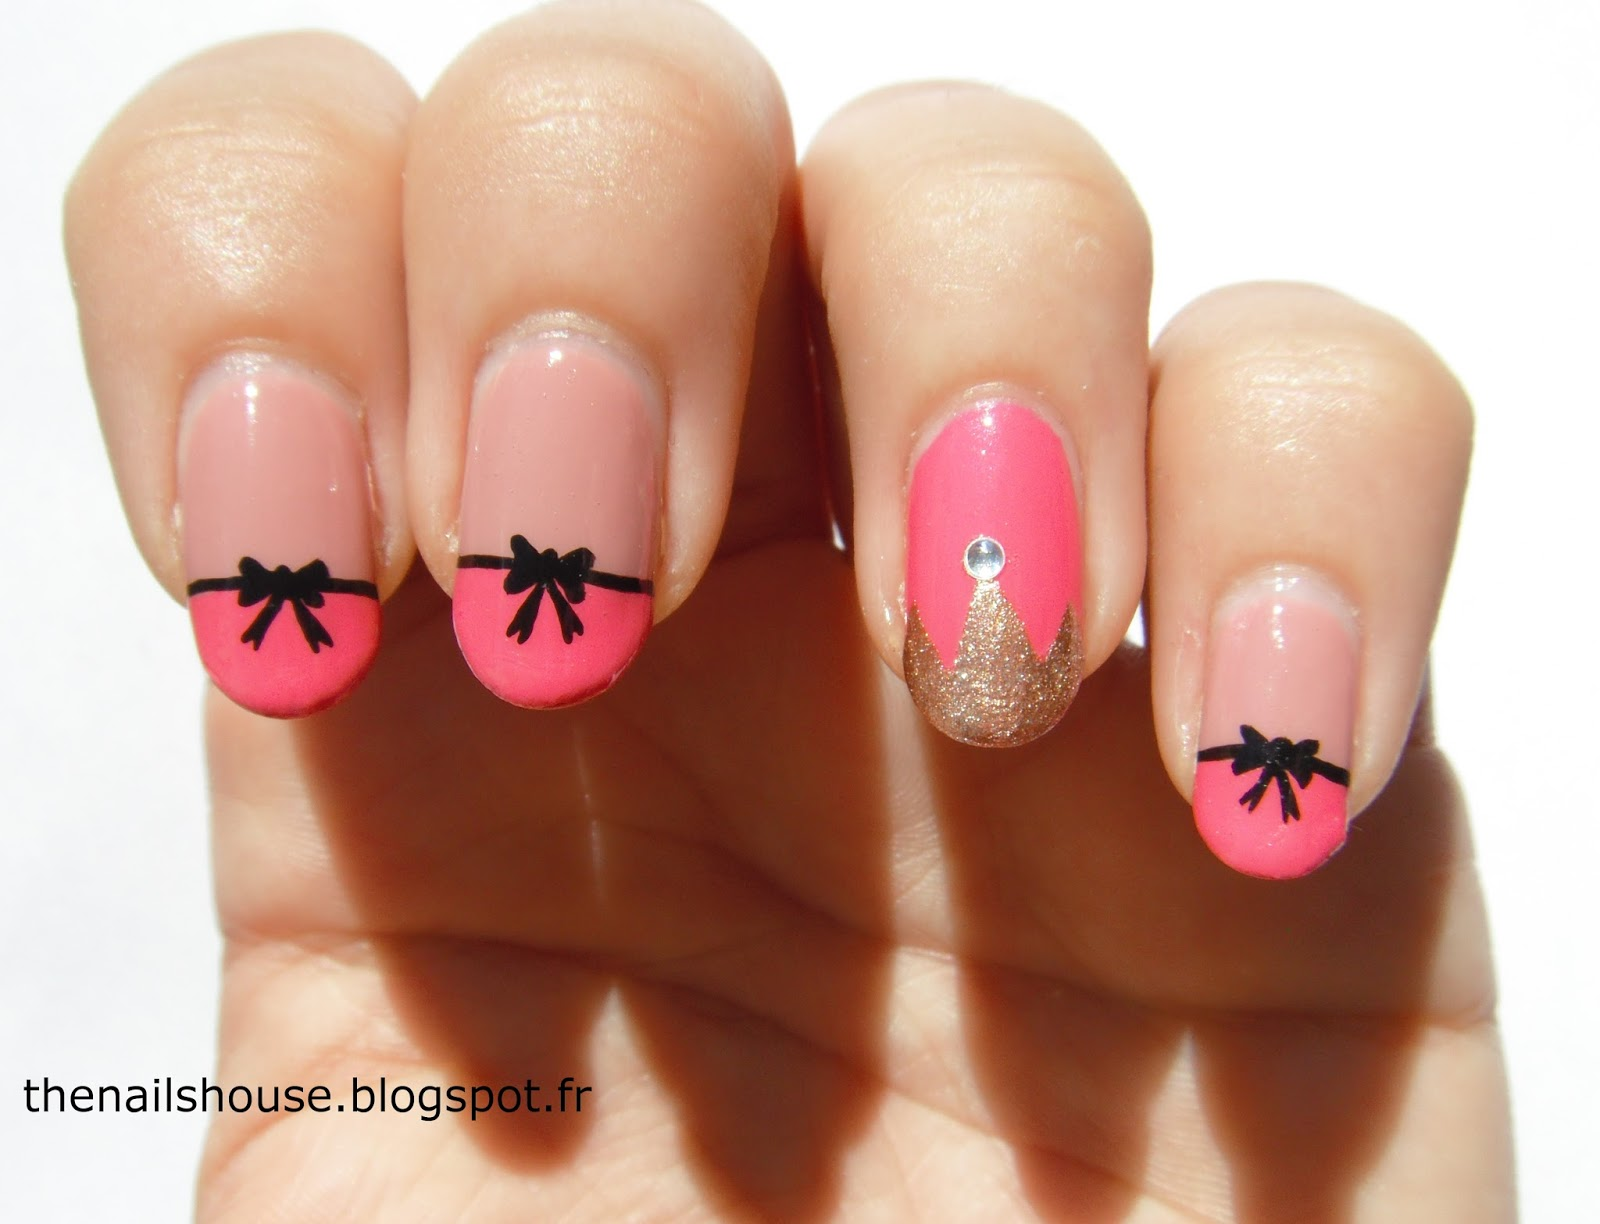 Nail art princesse noeud noeud the nails house - Dessiner un noeud ...